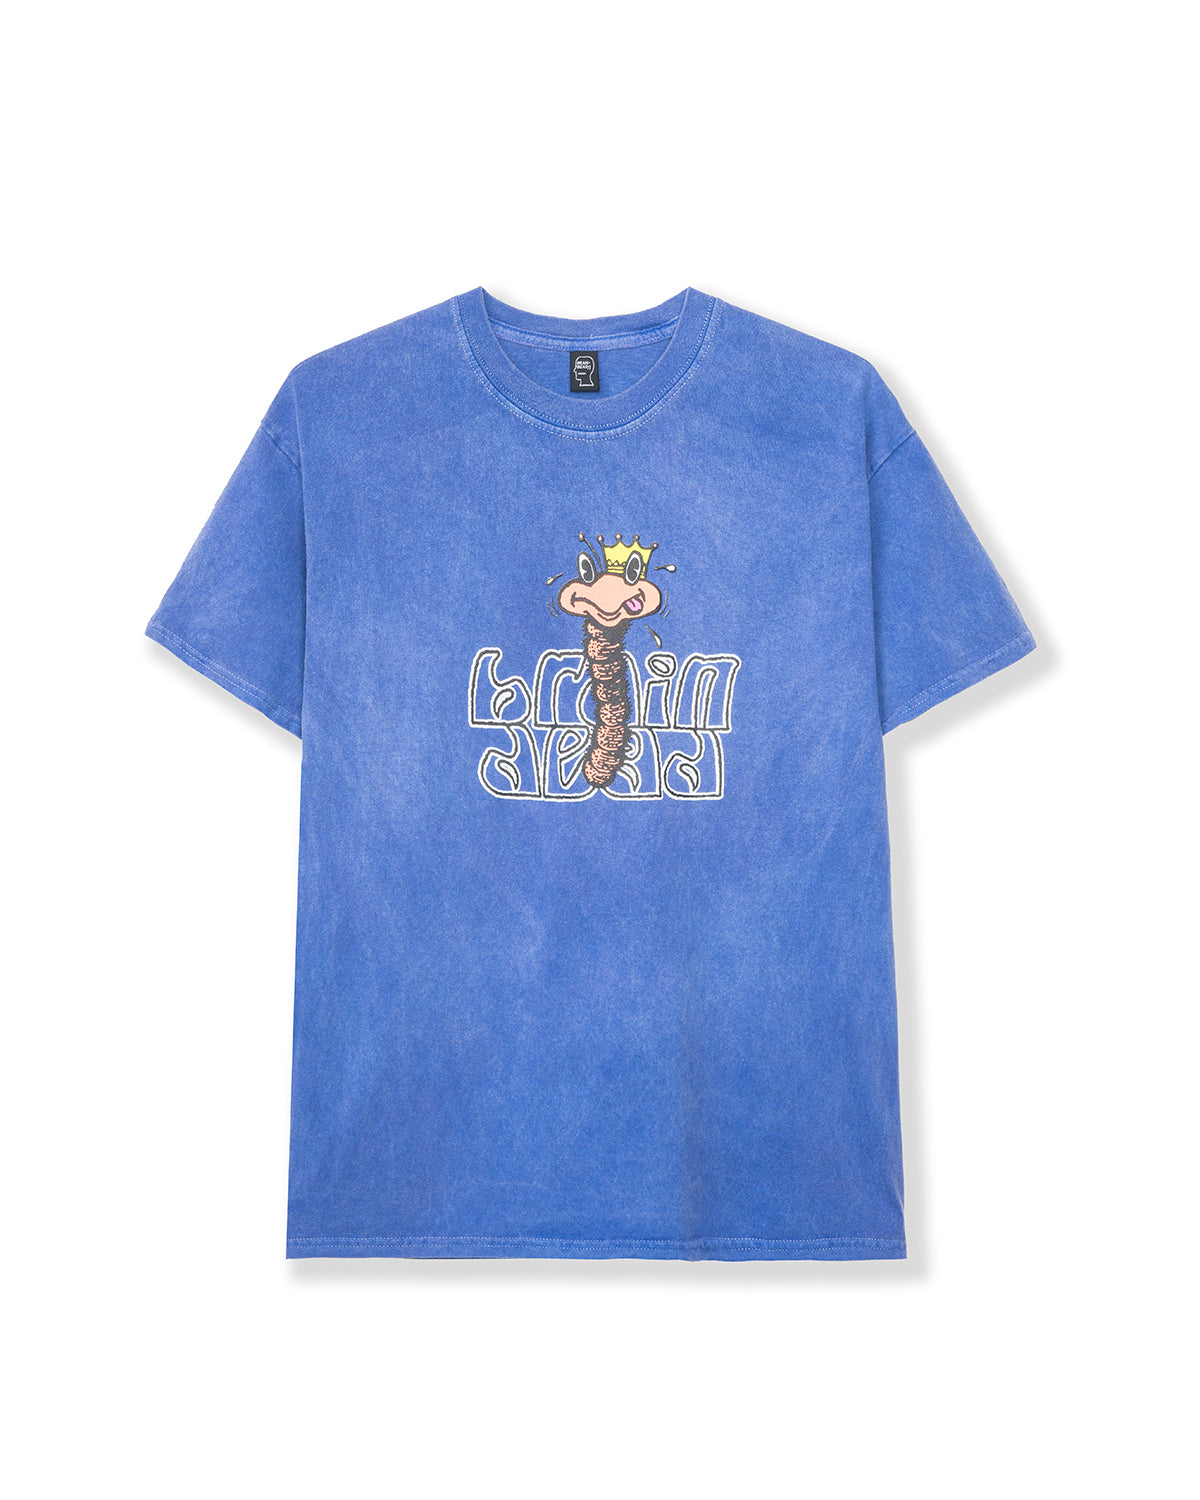 Wormzzz T-shirt - Blue